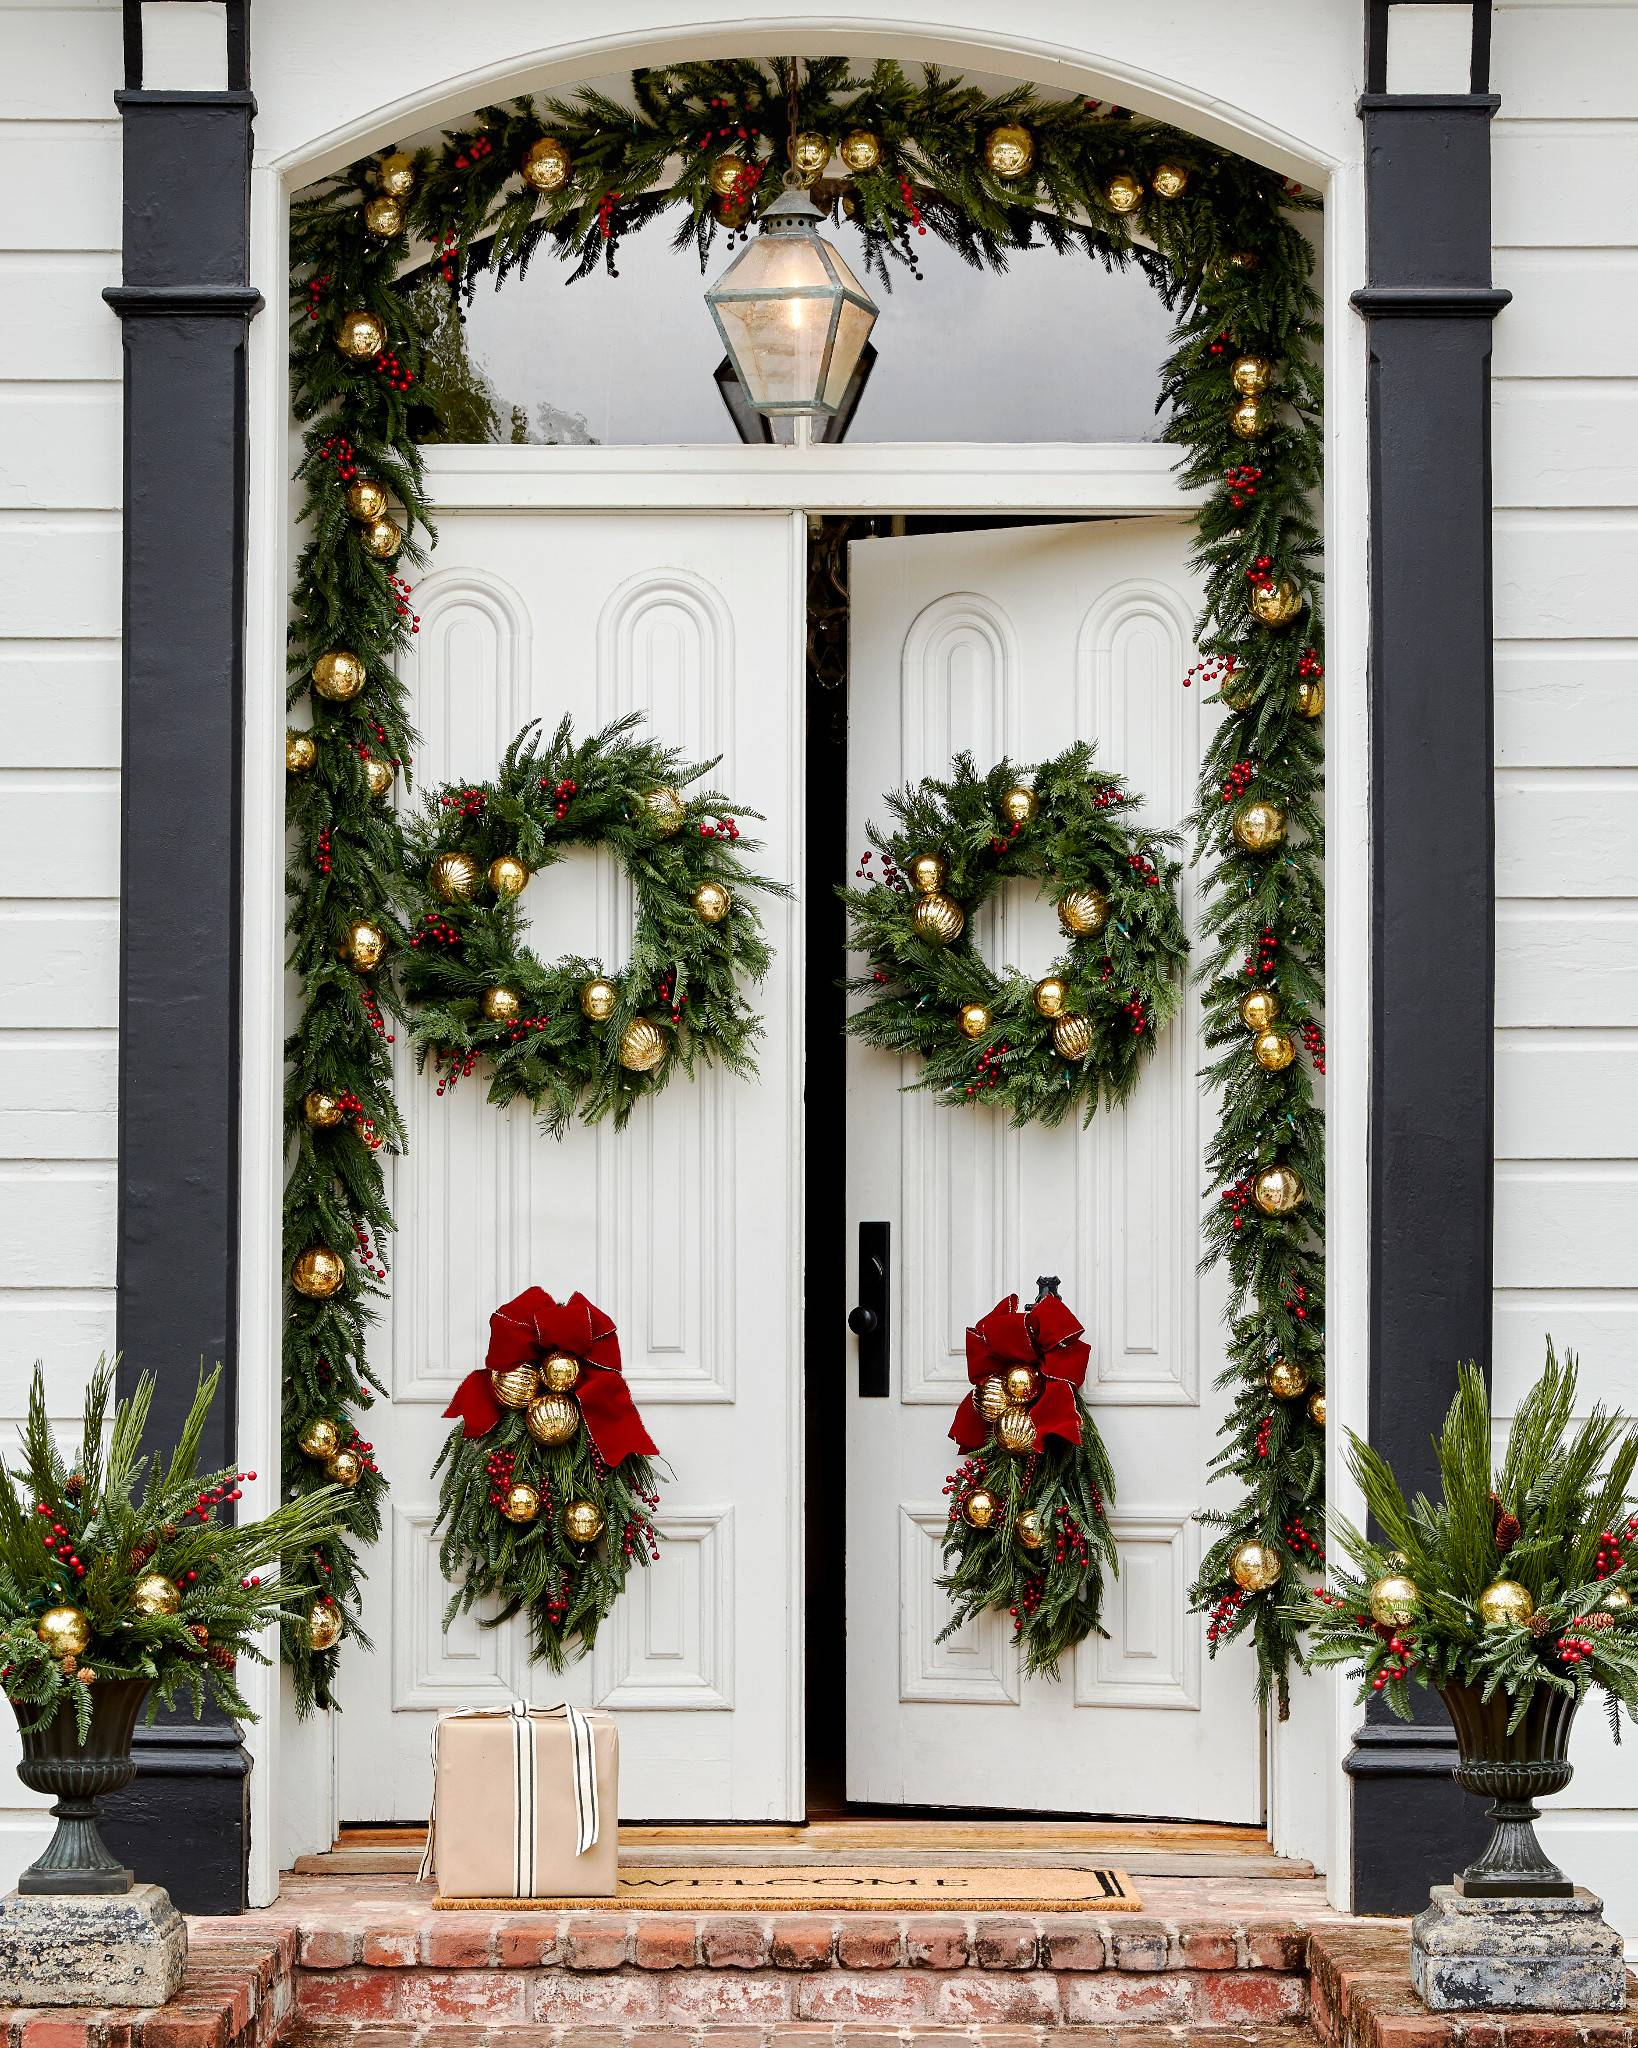 Front door decorated with greenery and gold ornaments